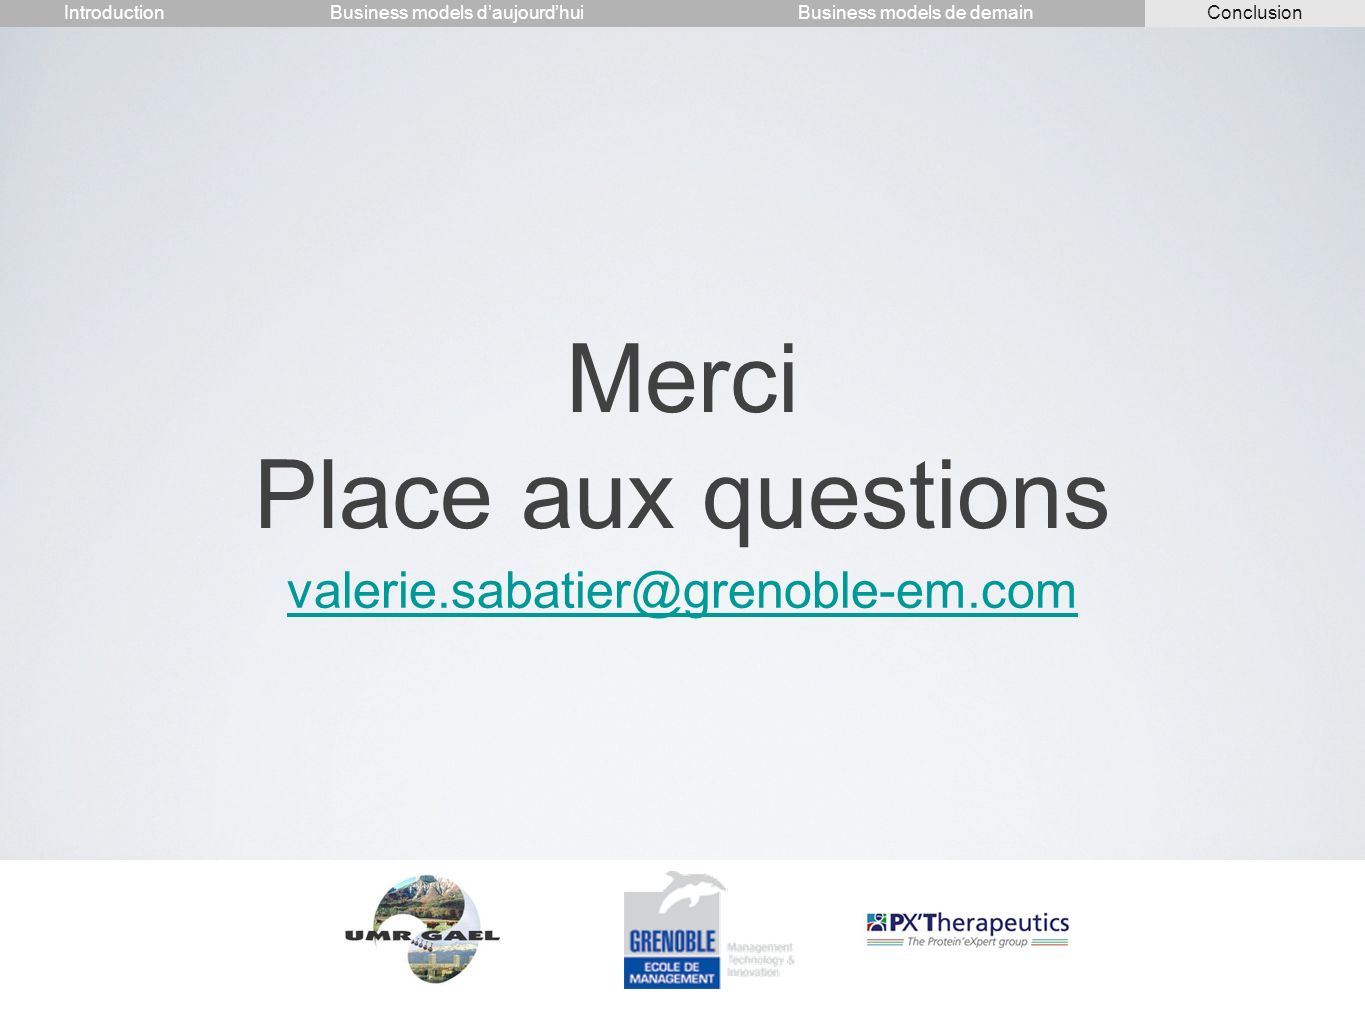 Merci Place aux questions